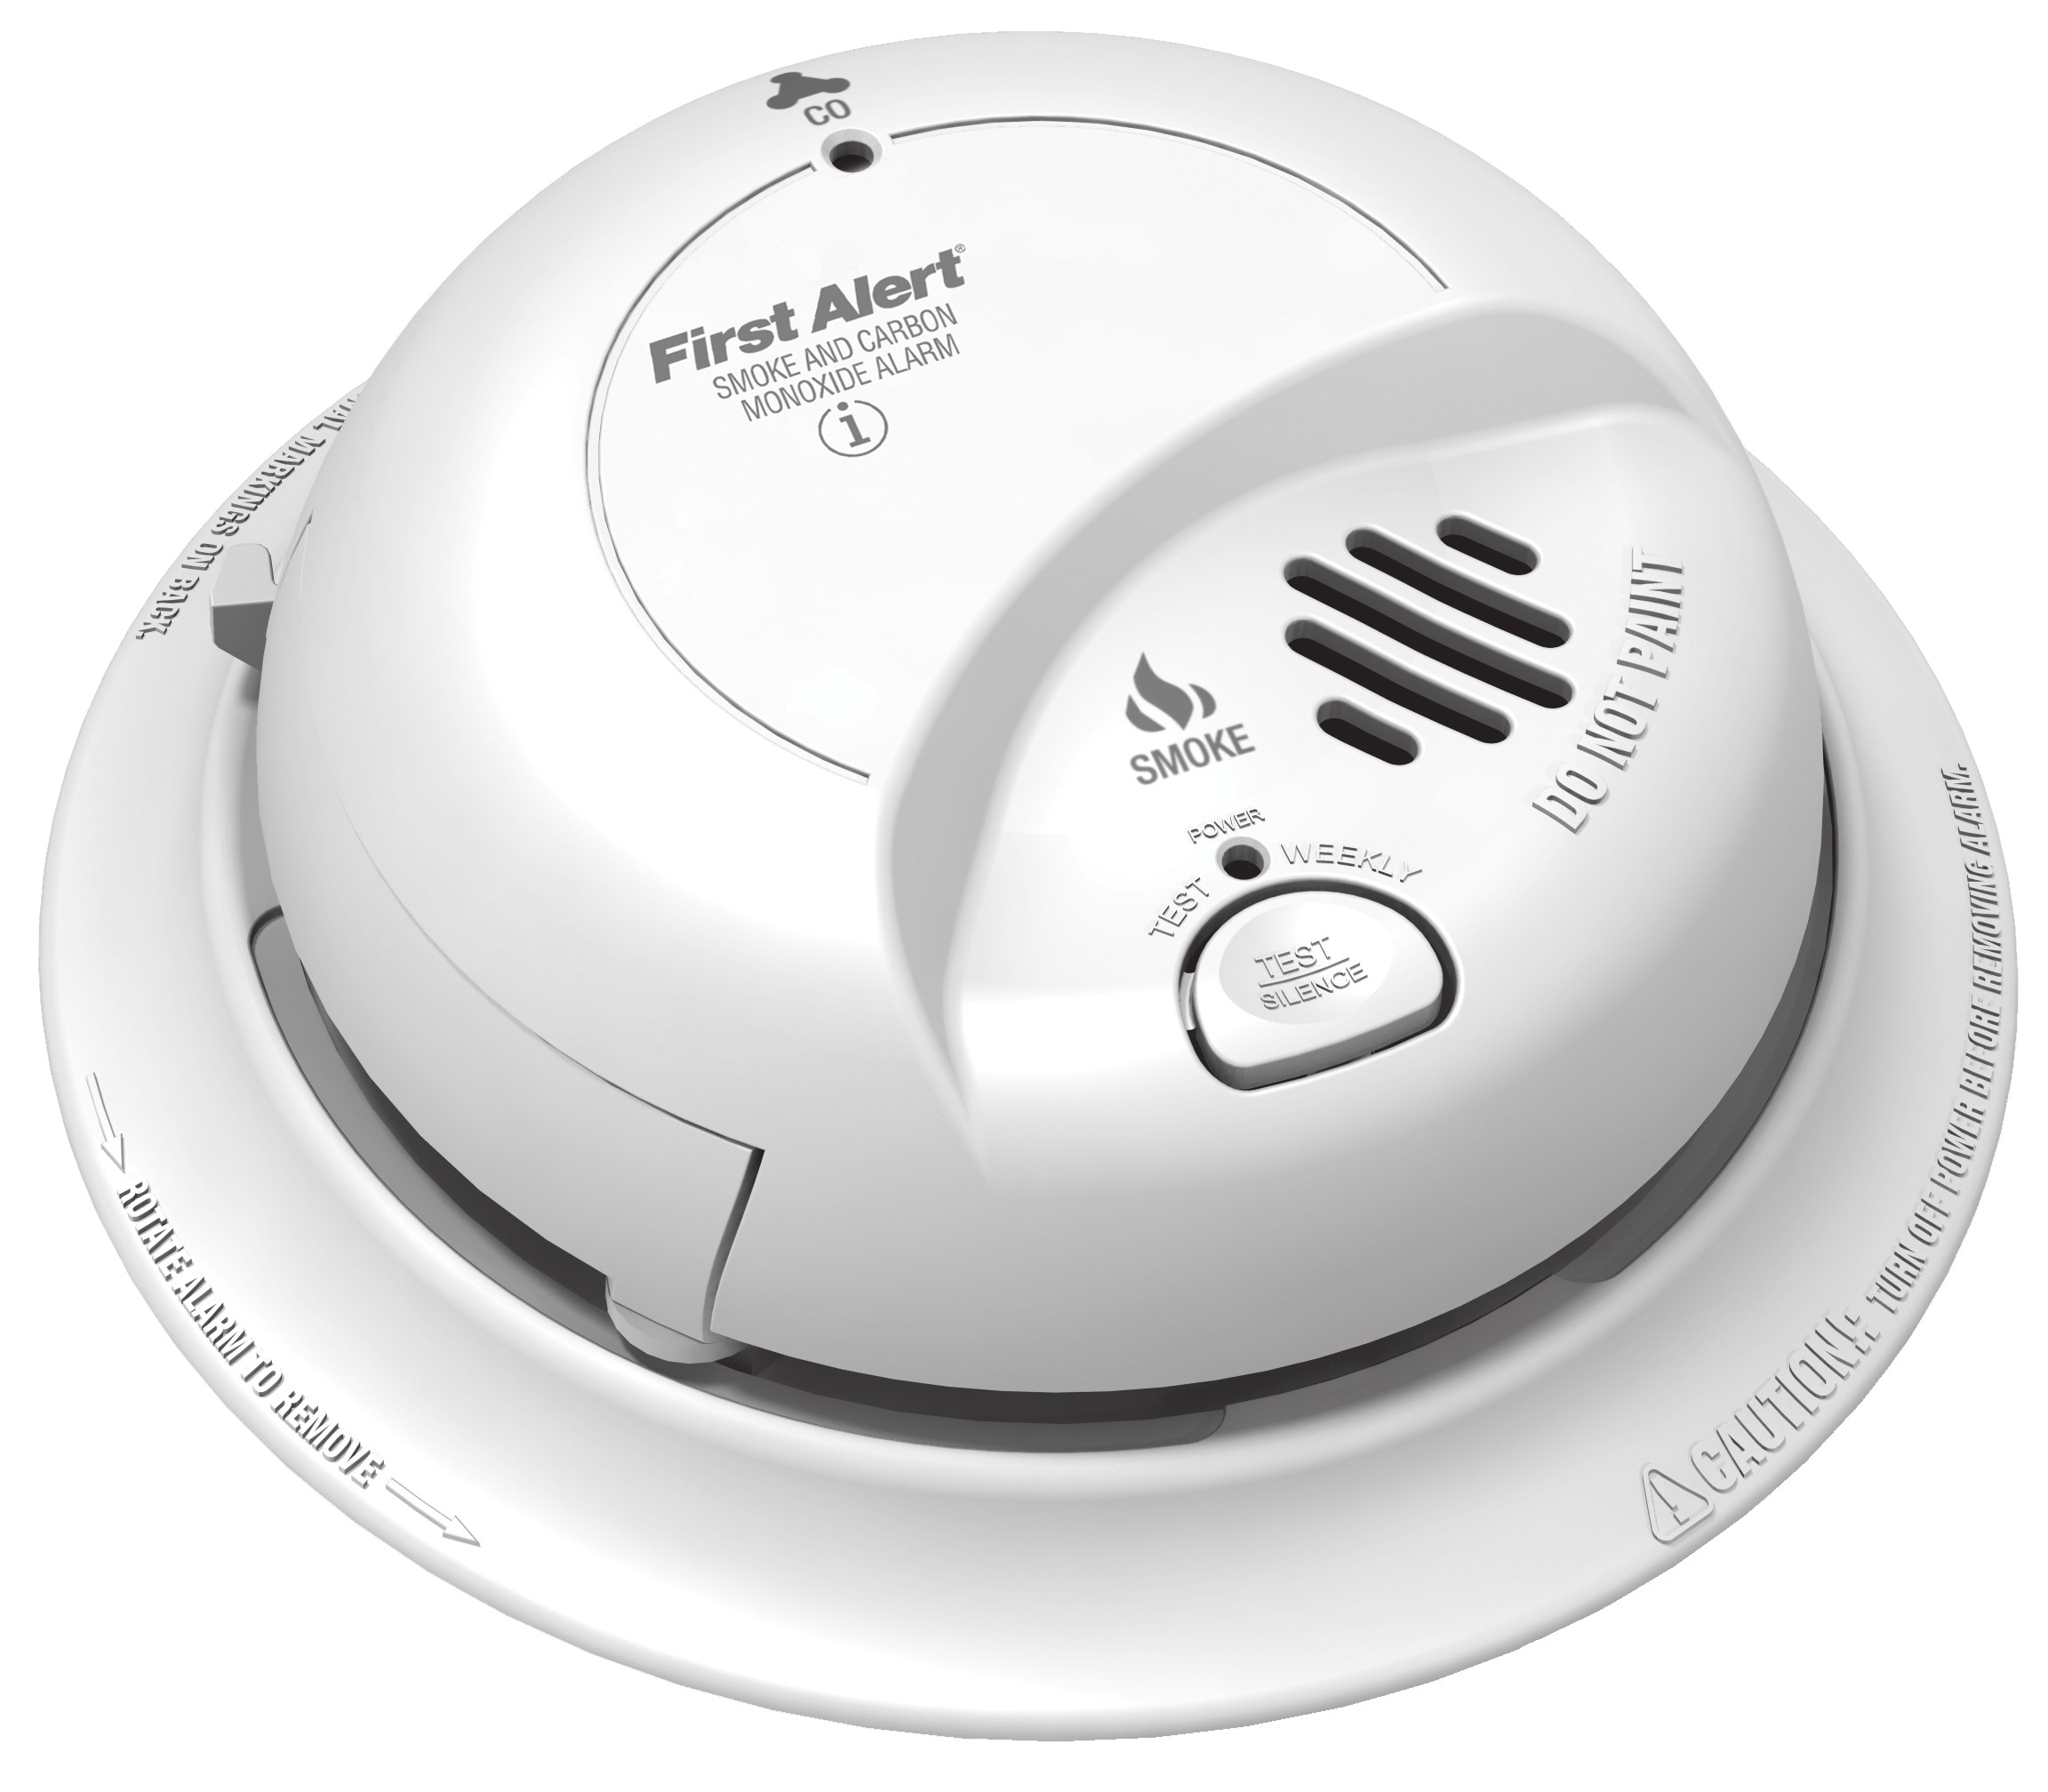 Brk sc9120b smokecarbon monoxide alarm status in stockships in approx 4 days if you order 699 of this item ships the next busines day brk sc9120b first alert smokecarbon monoxide alarm solutioingenieria Image collections